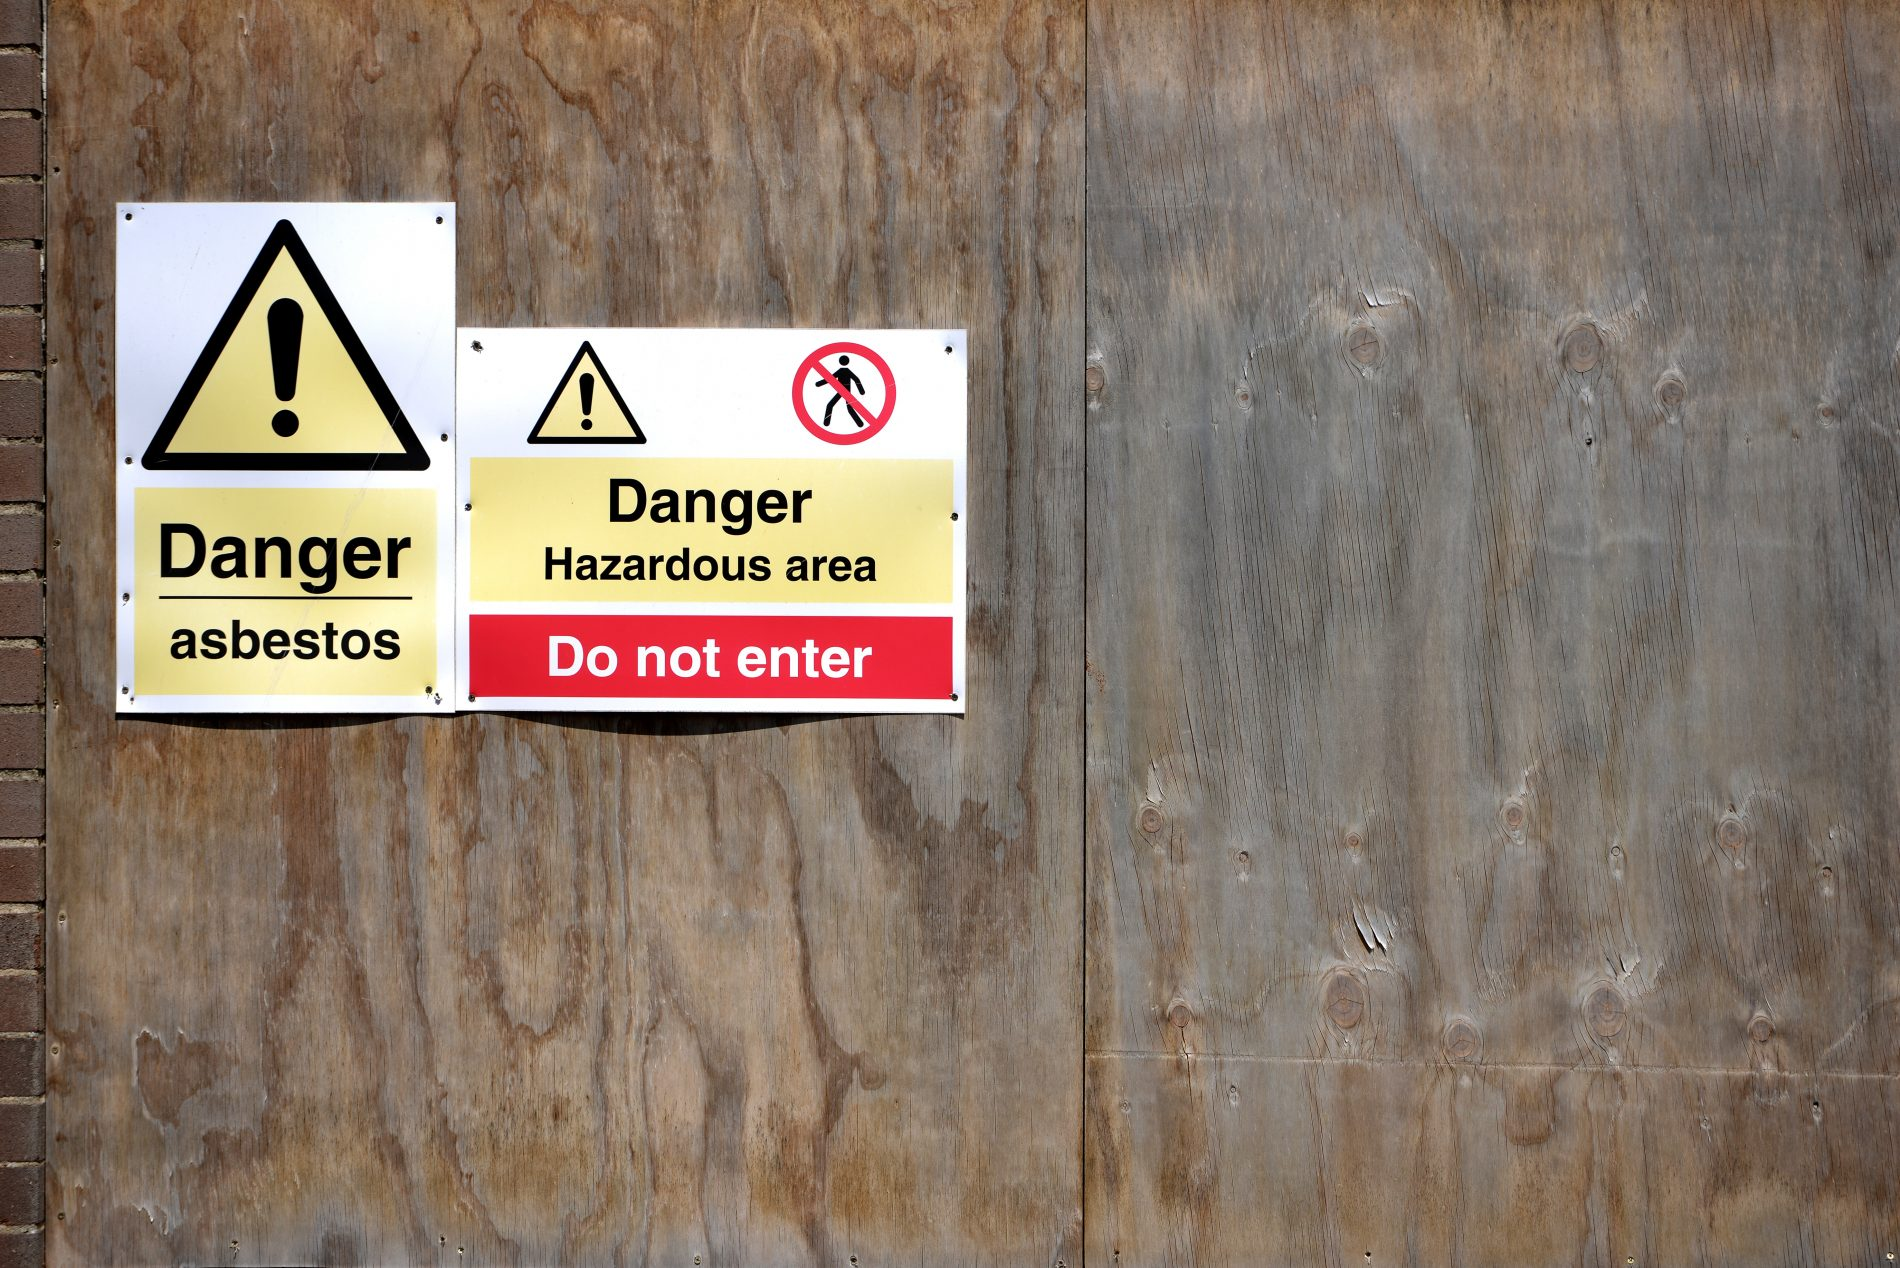 Danger asbestos sign on boarded up building